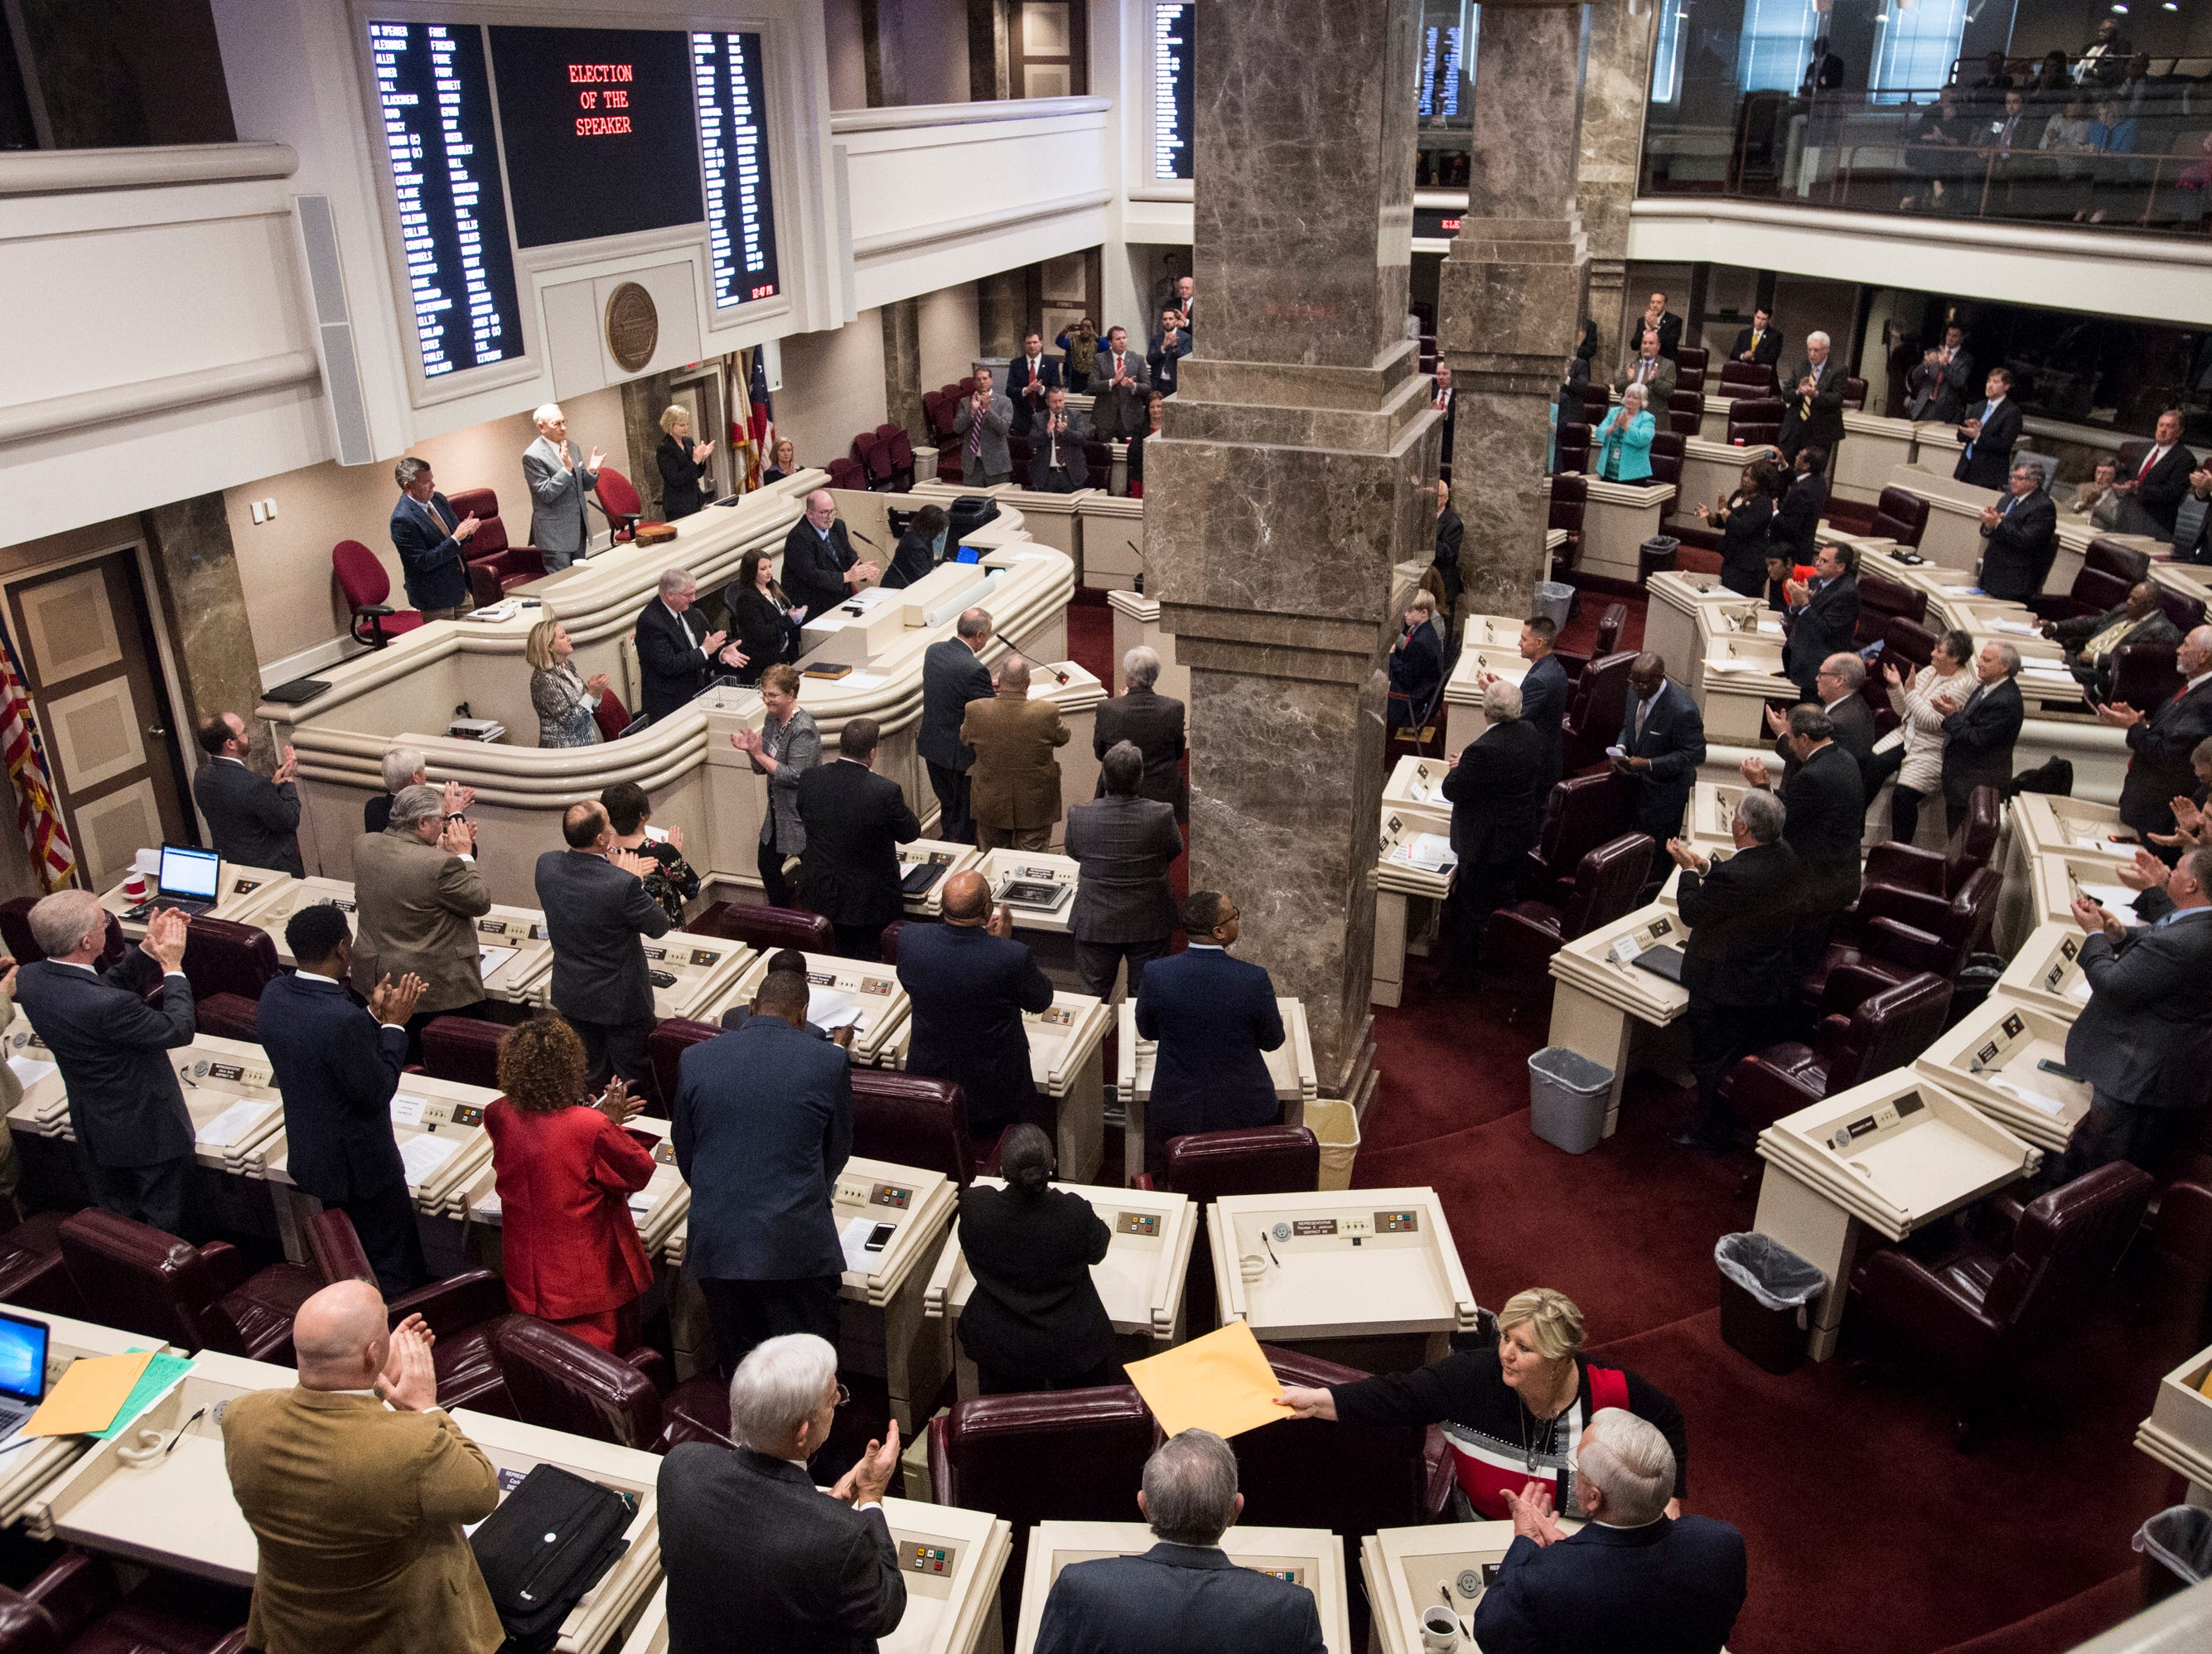 The Alabama House of Representatives during the 2019 Alabama Legislature's organizational session at the Alabama State House in Montgomery, Ala., on Tuesday, Jan. 8, 2019.